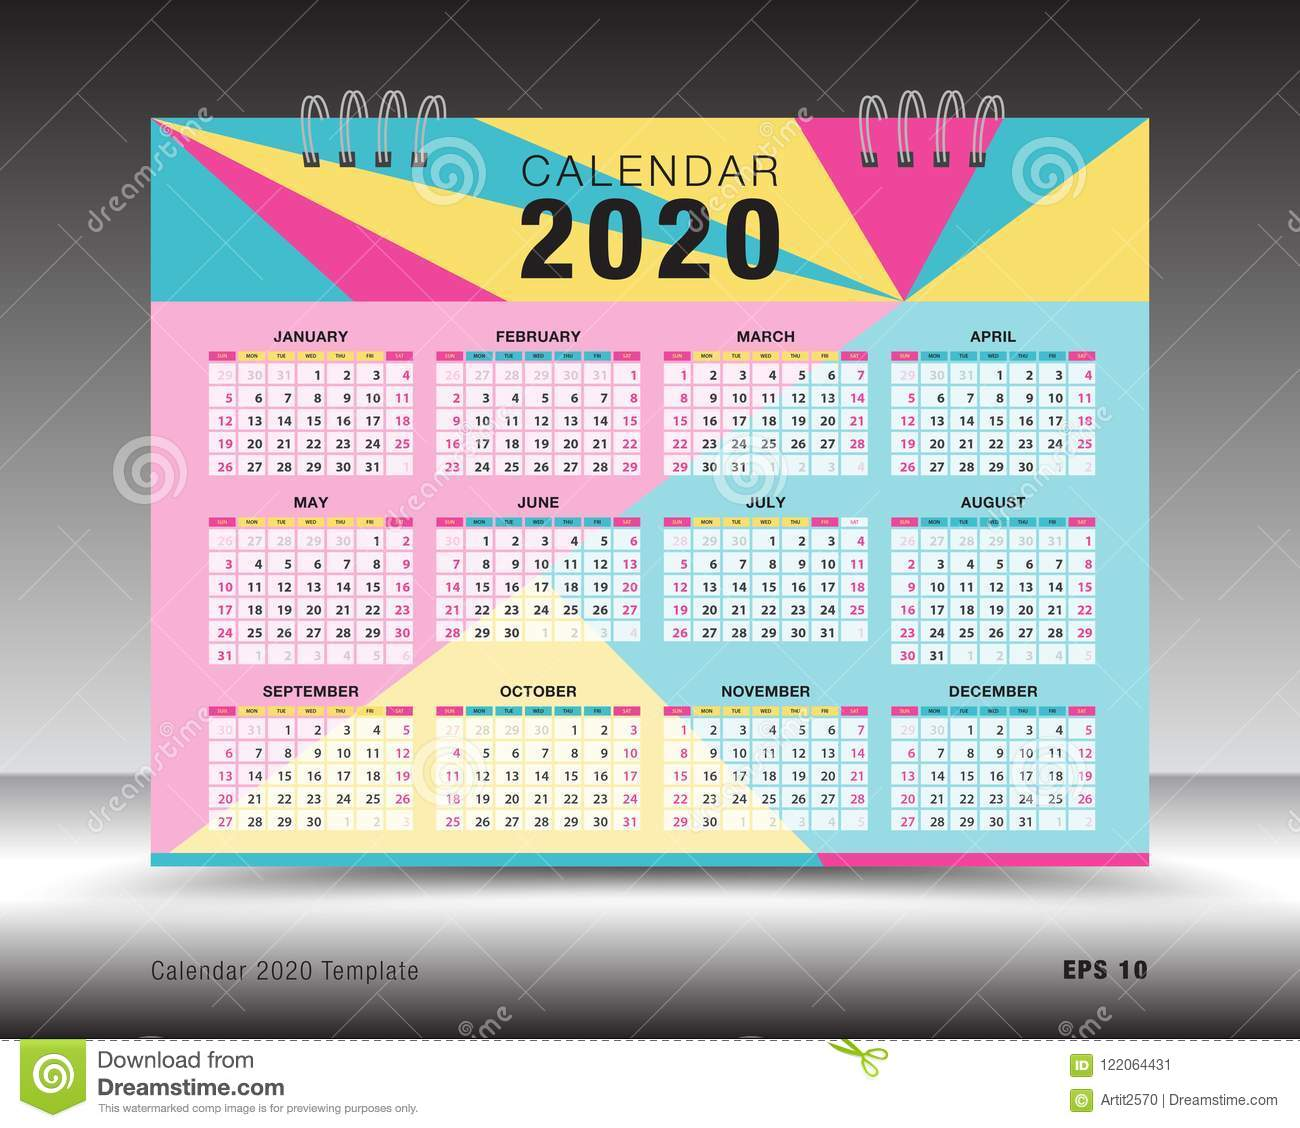 Calendar 2020 Template Layout, Colorful Business Brochure Flyer